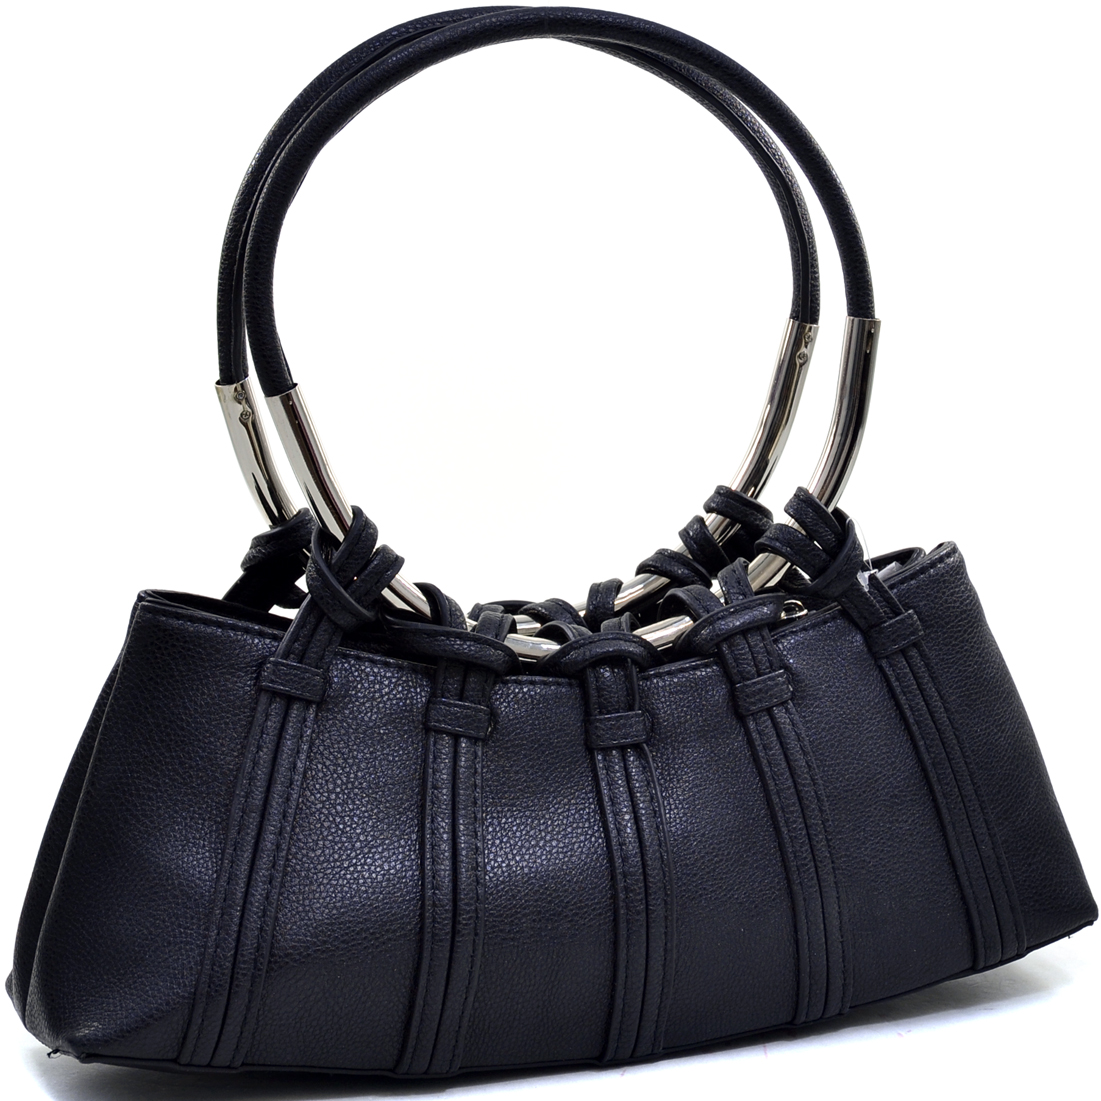 Dual Ring Strap Shoulder Bag